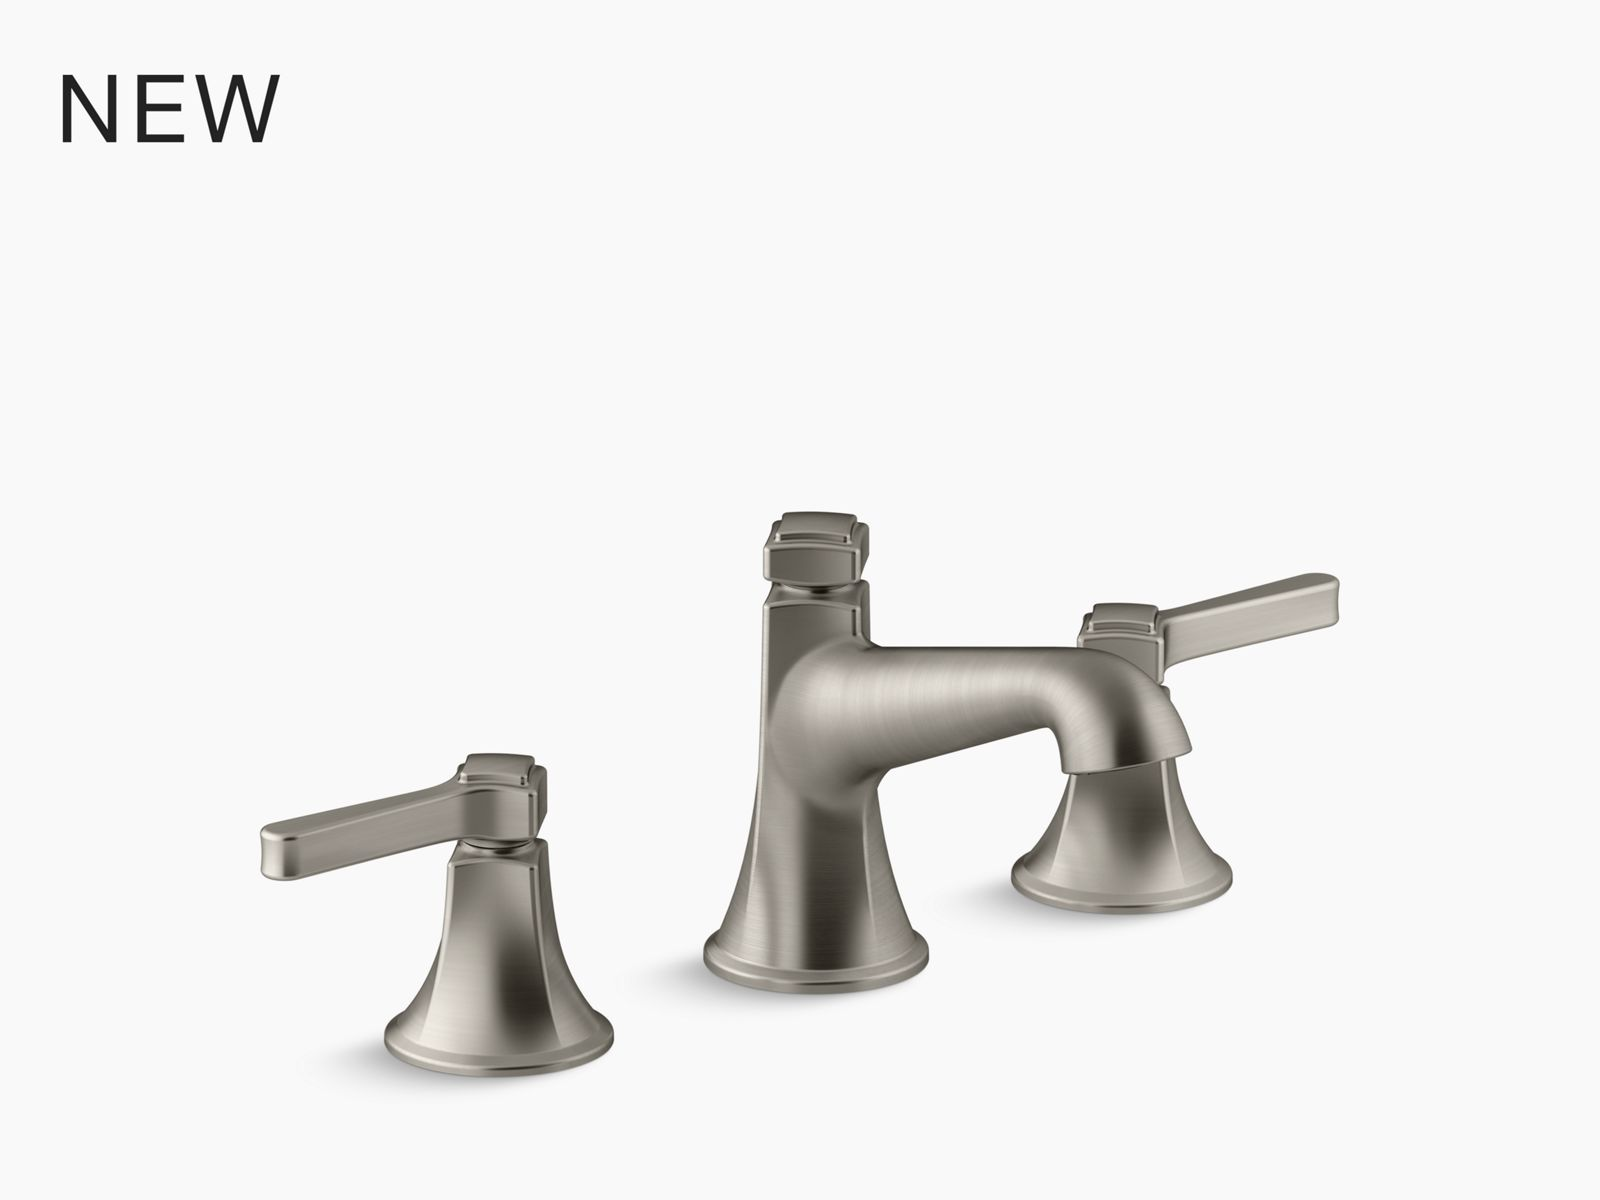 purist widespread wall mount bathroom sink faucet trim with 6 1 4 spout and lever handles requires valve